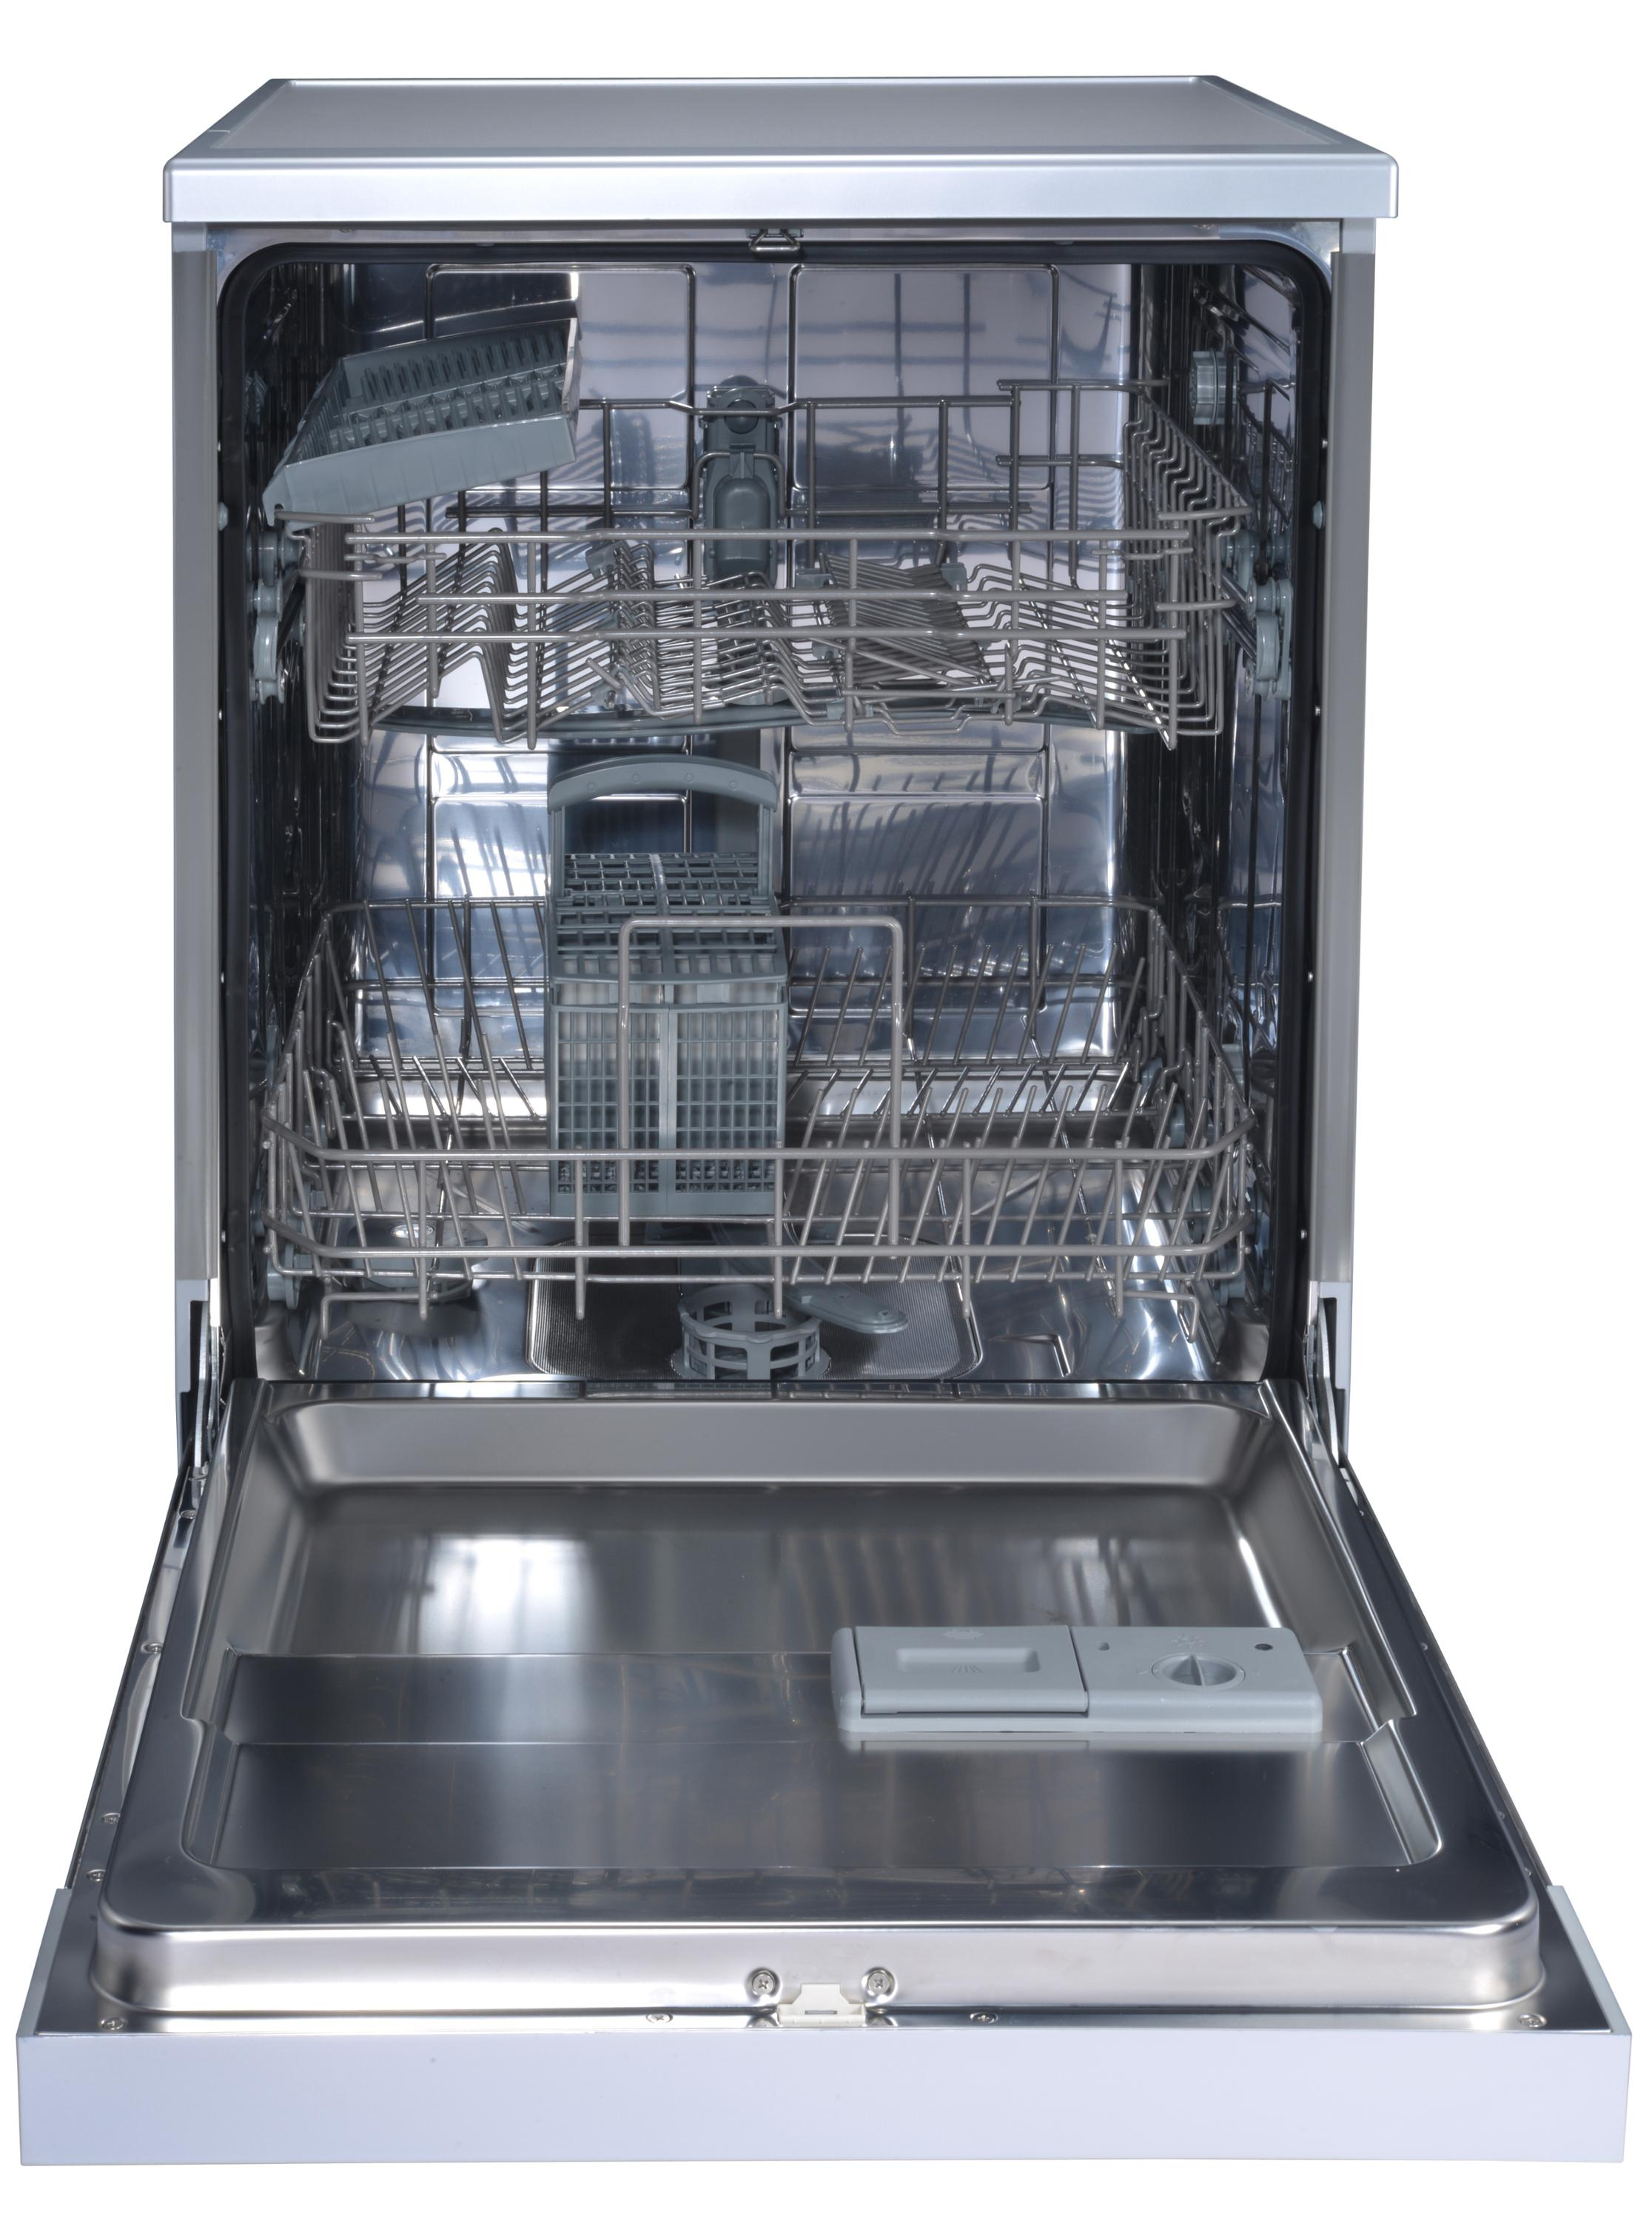 Commercial Mini Dish Washer For Home Use/Small Home Dishwasher